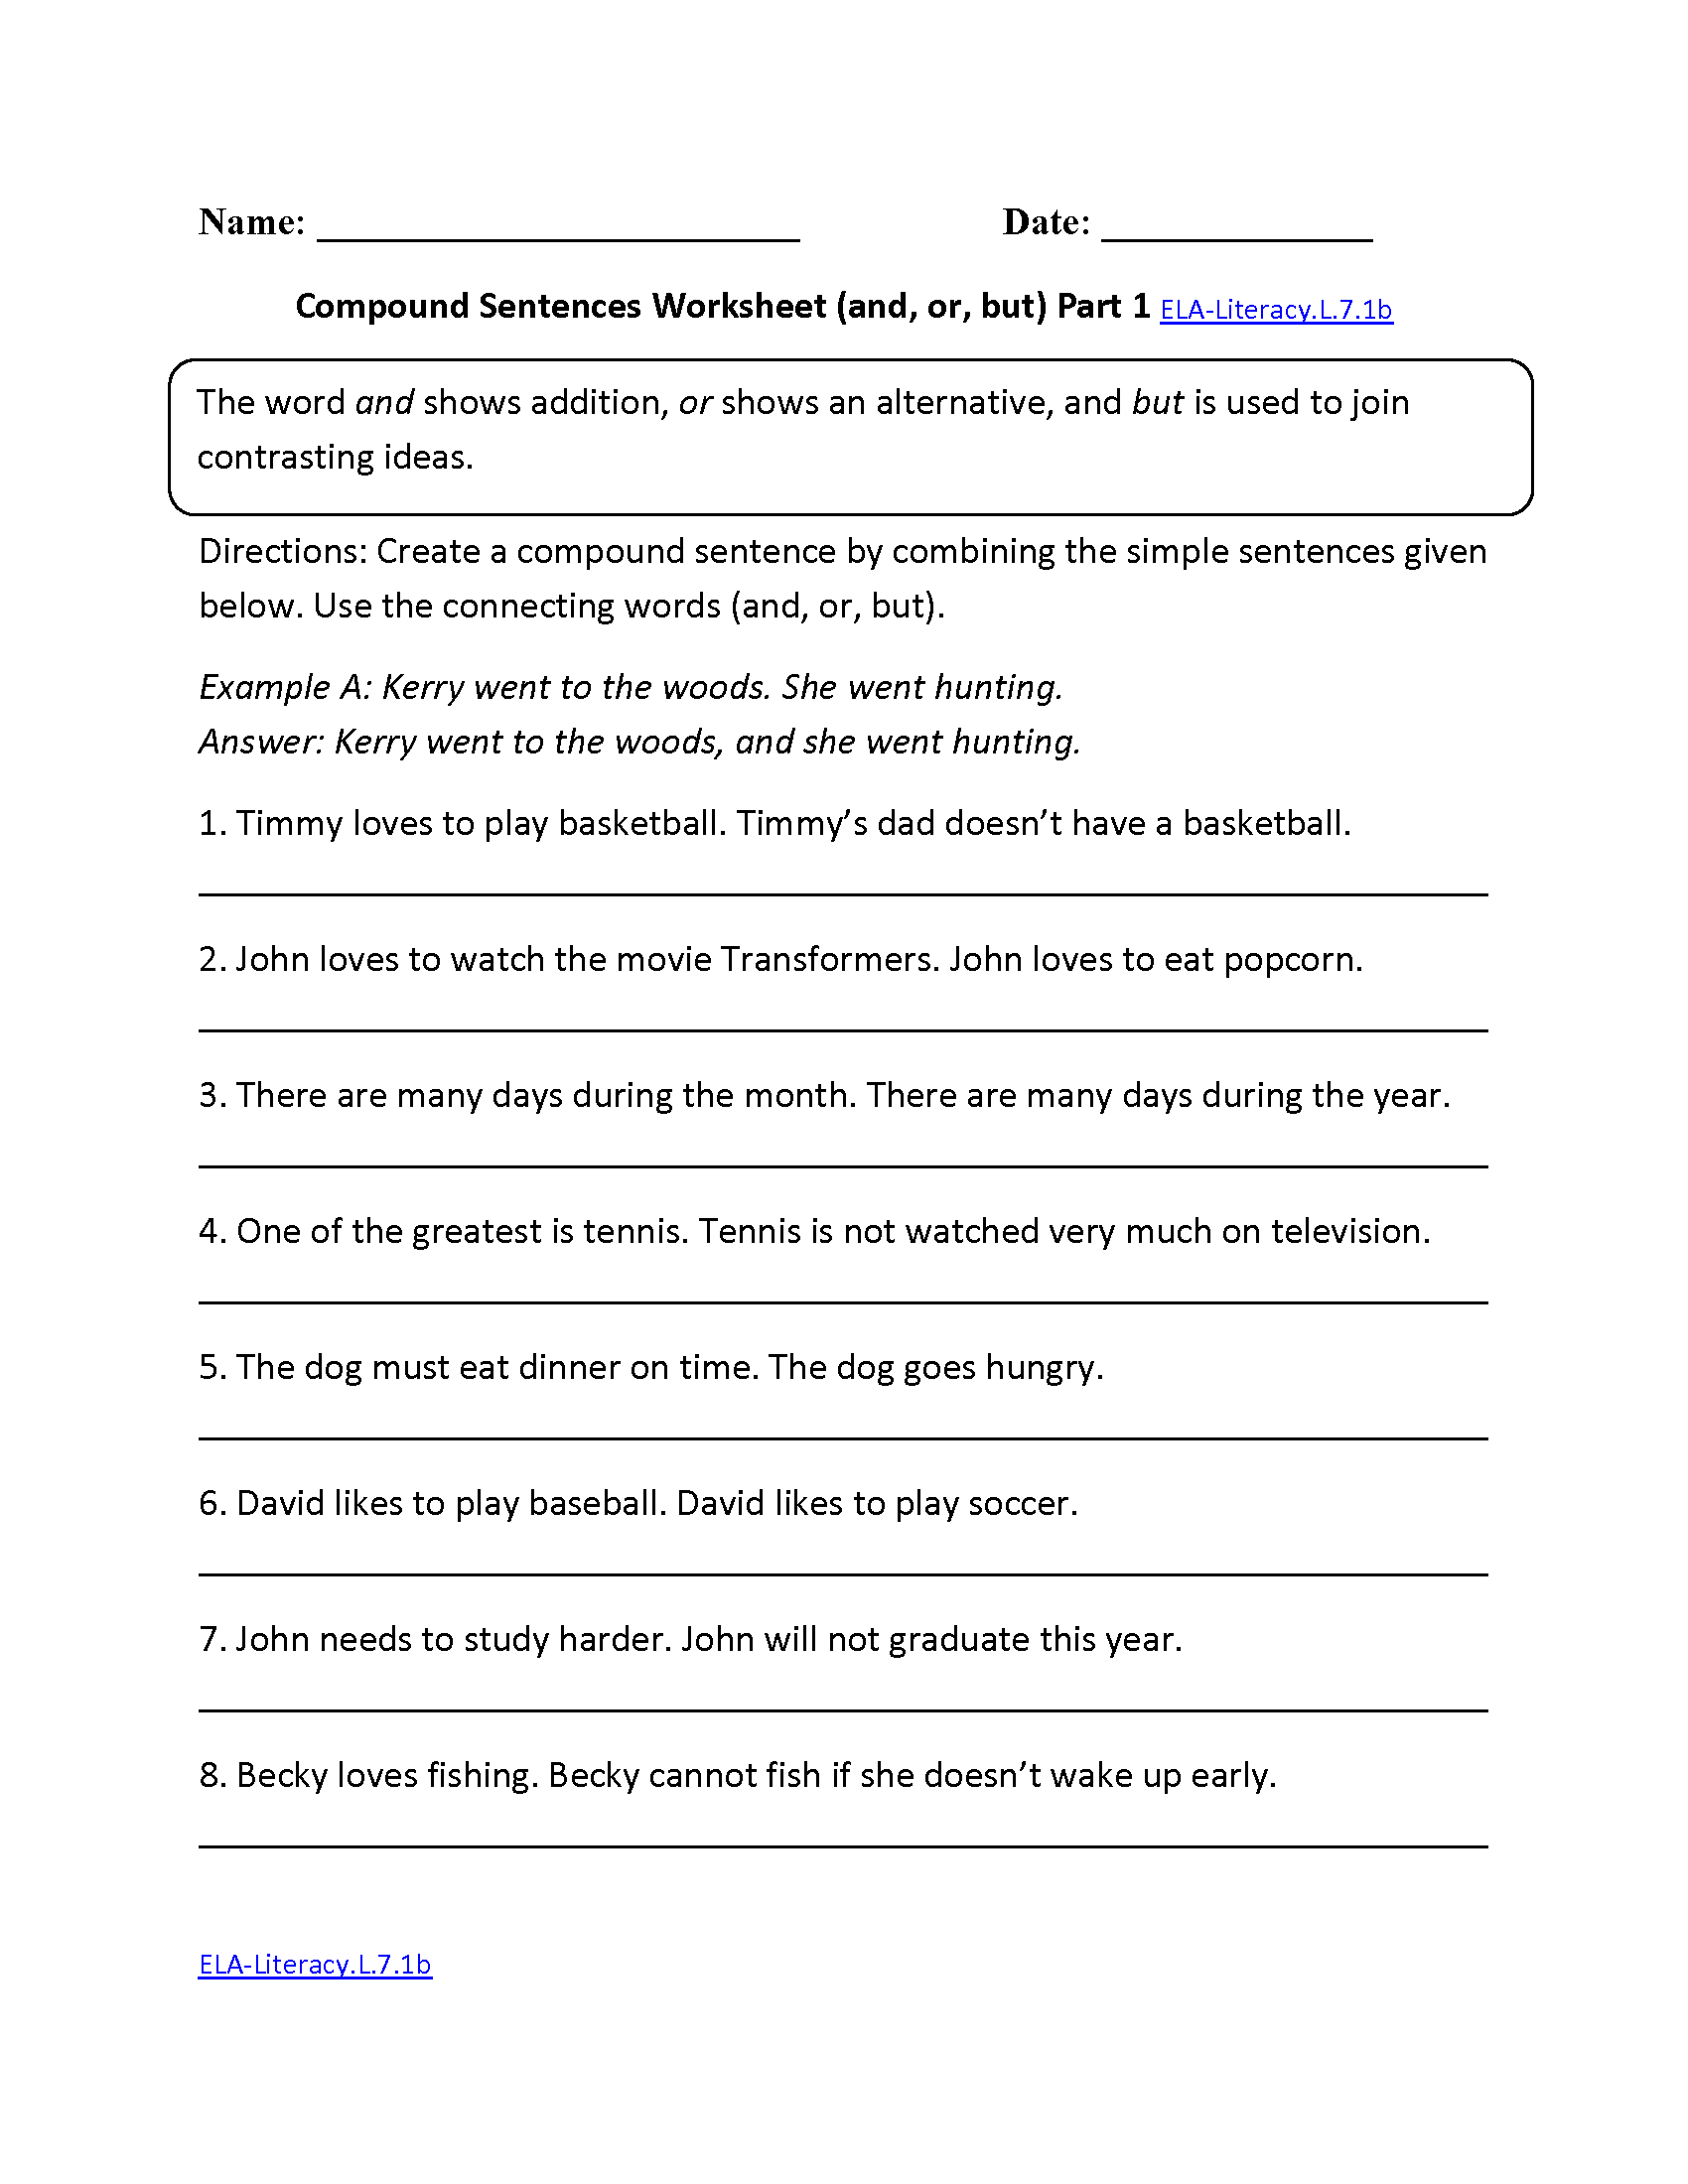 Free Worksheet 7th Grade Worksheets 7th grade common core language worksheets compound sentences worksheet ela literacy l 7 1b worksheet